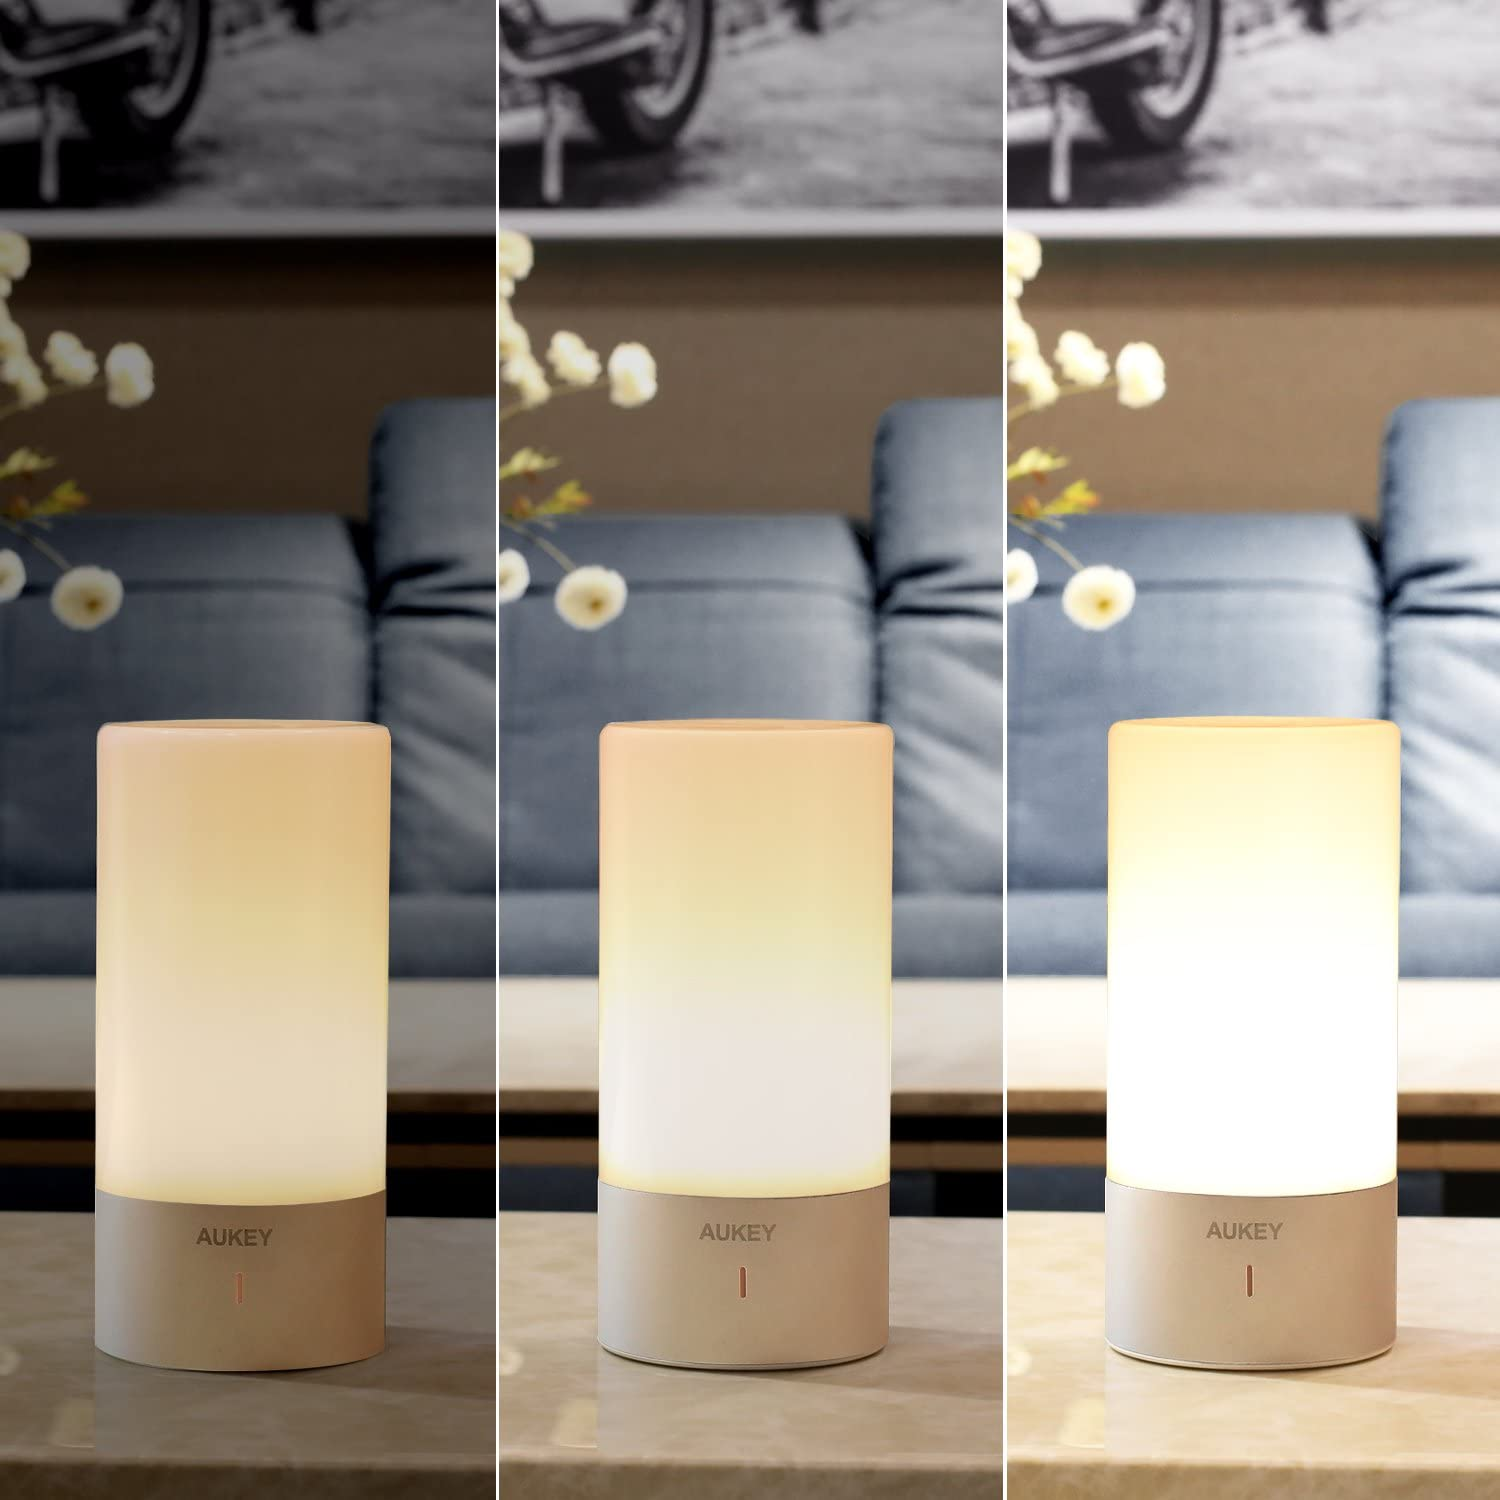 AUKEY Table Lamp, Touch Sensor Bedside Lamps + Dimmable Warm White Light